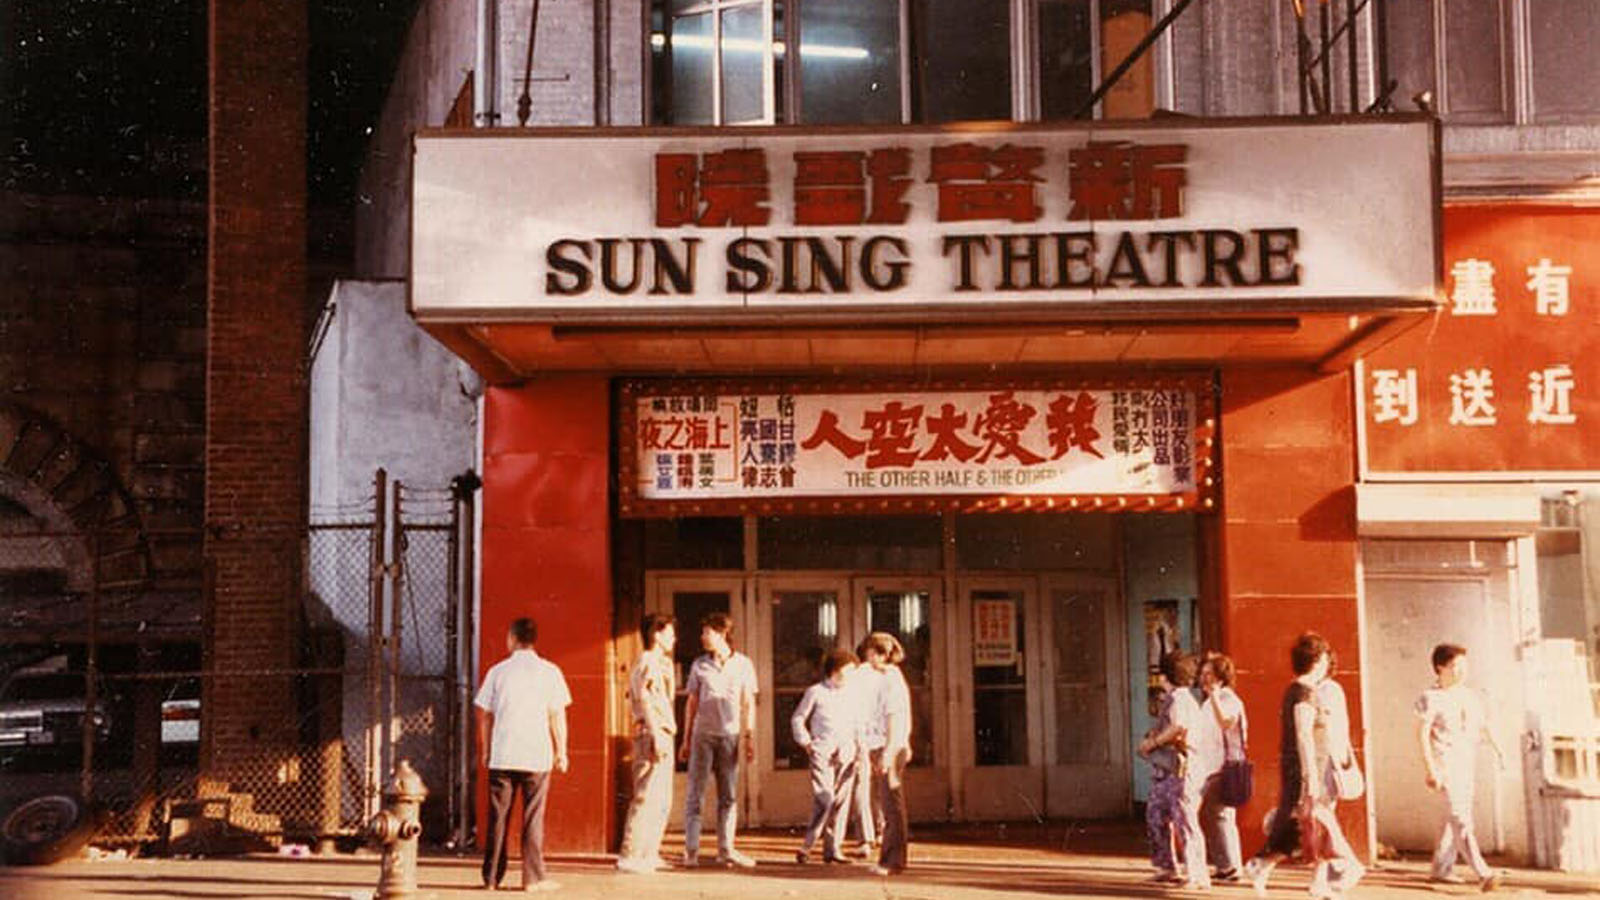 The Sun Sing Theatre in NYC's Chinatown